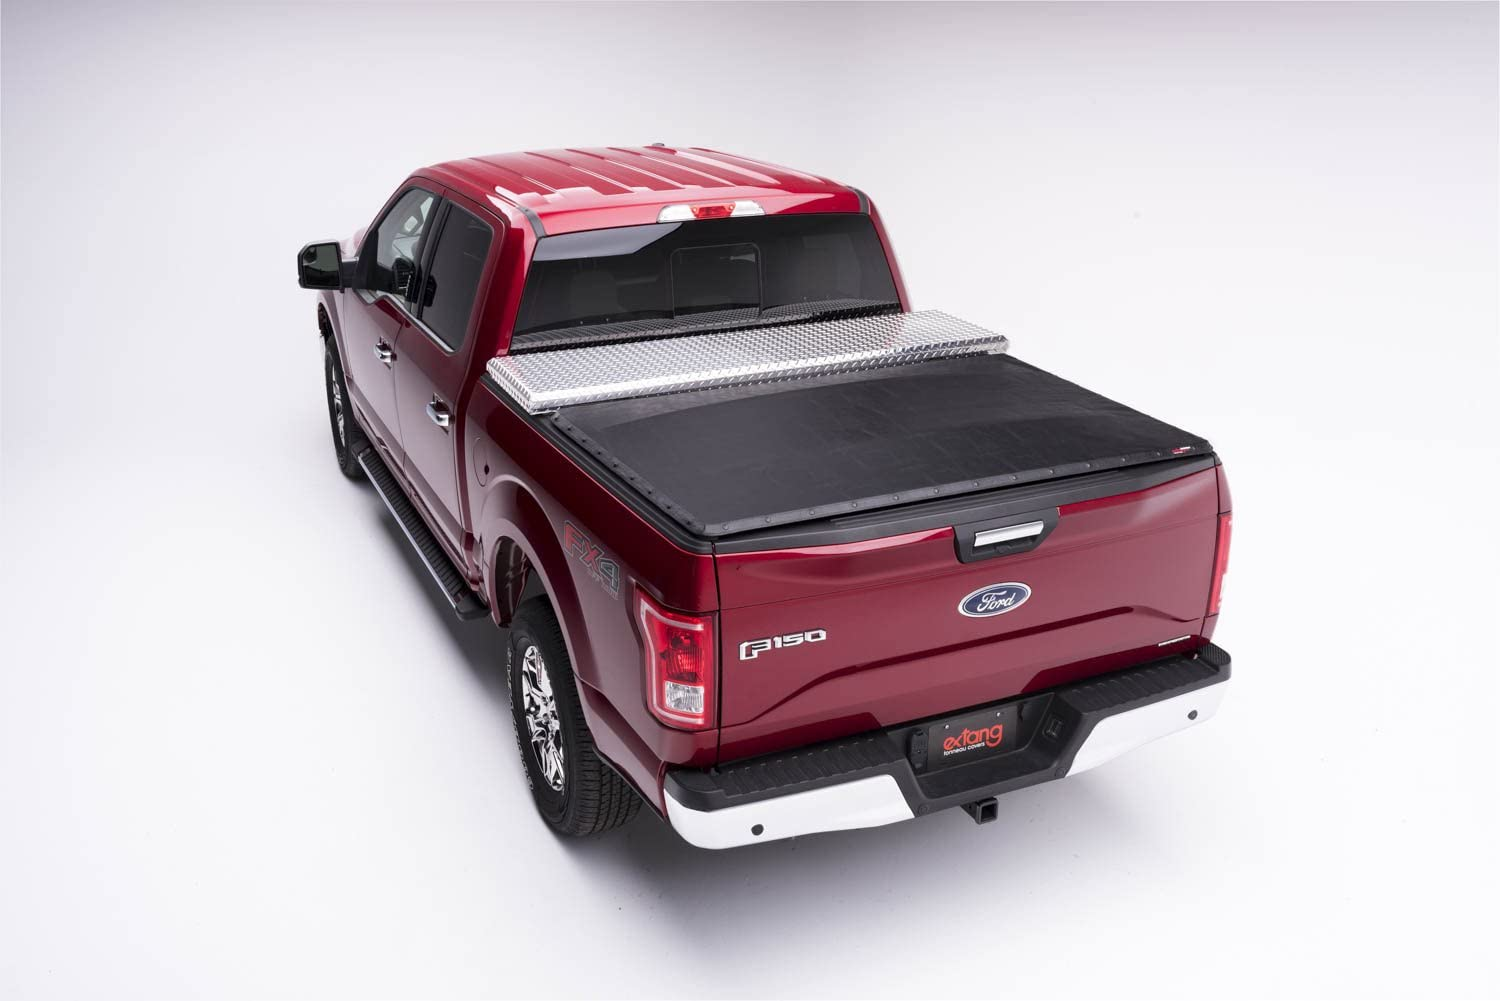 Fits 96-03 Chevy S10 Stepside 66 Bed Extang Tool Box Tonno Soft Roll-up Truck Bed Tonneau Cover 32605